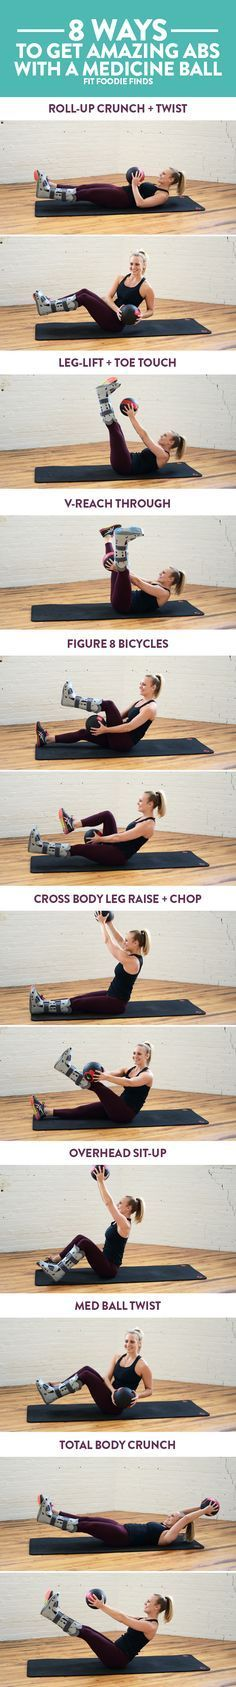 8 Ways to Get Amazing Abs with a Medicine ball. Plus- a mini circuit that you can do to finish off a workout!Here's 8 Ways to Get Amazing Abs with a Medicine ball. Plus- a mini circuit that you can do to finish off a workout! Lower Ab Workouts, Easy Workouts, At Home Workouts, Fitness Workouts, Ab Exercises, Ab Moves, Stability Exercises, Fitness Weightloss, Fitness Motivation